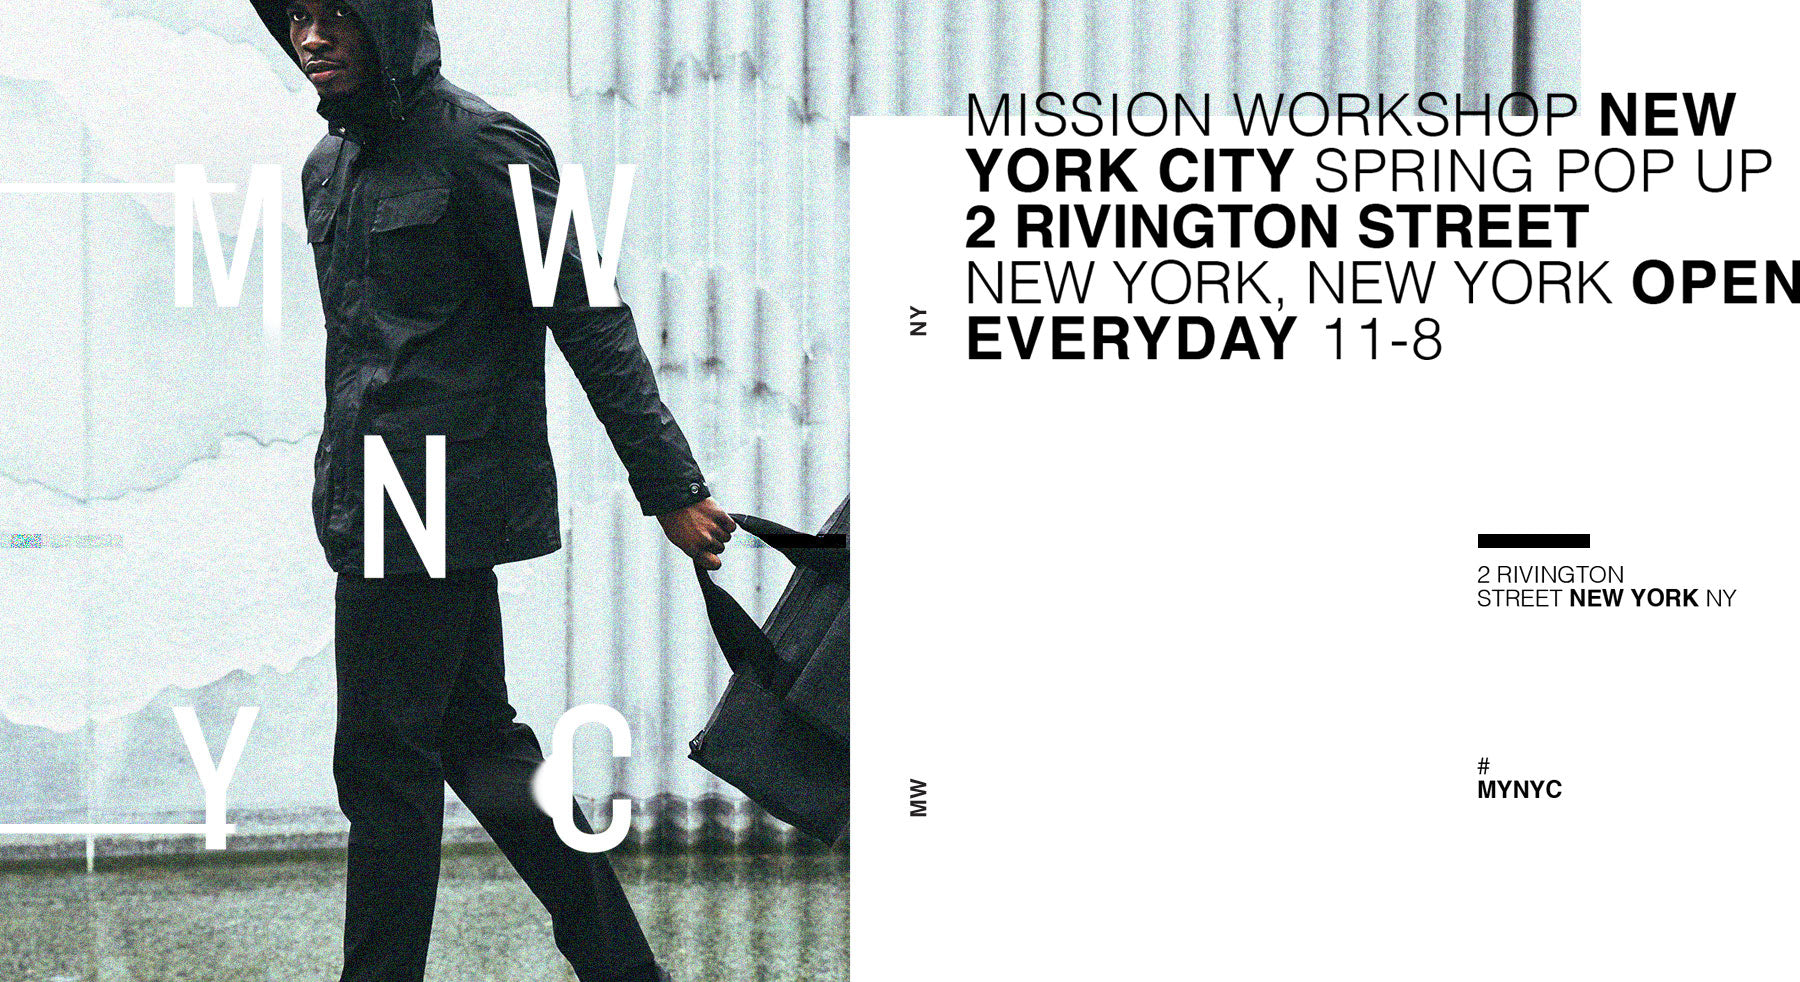 Mission Workshop New York Pop-up Location Information